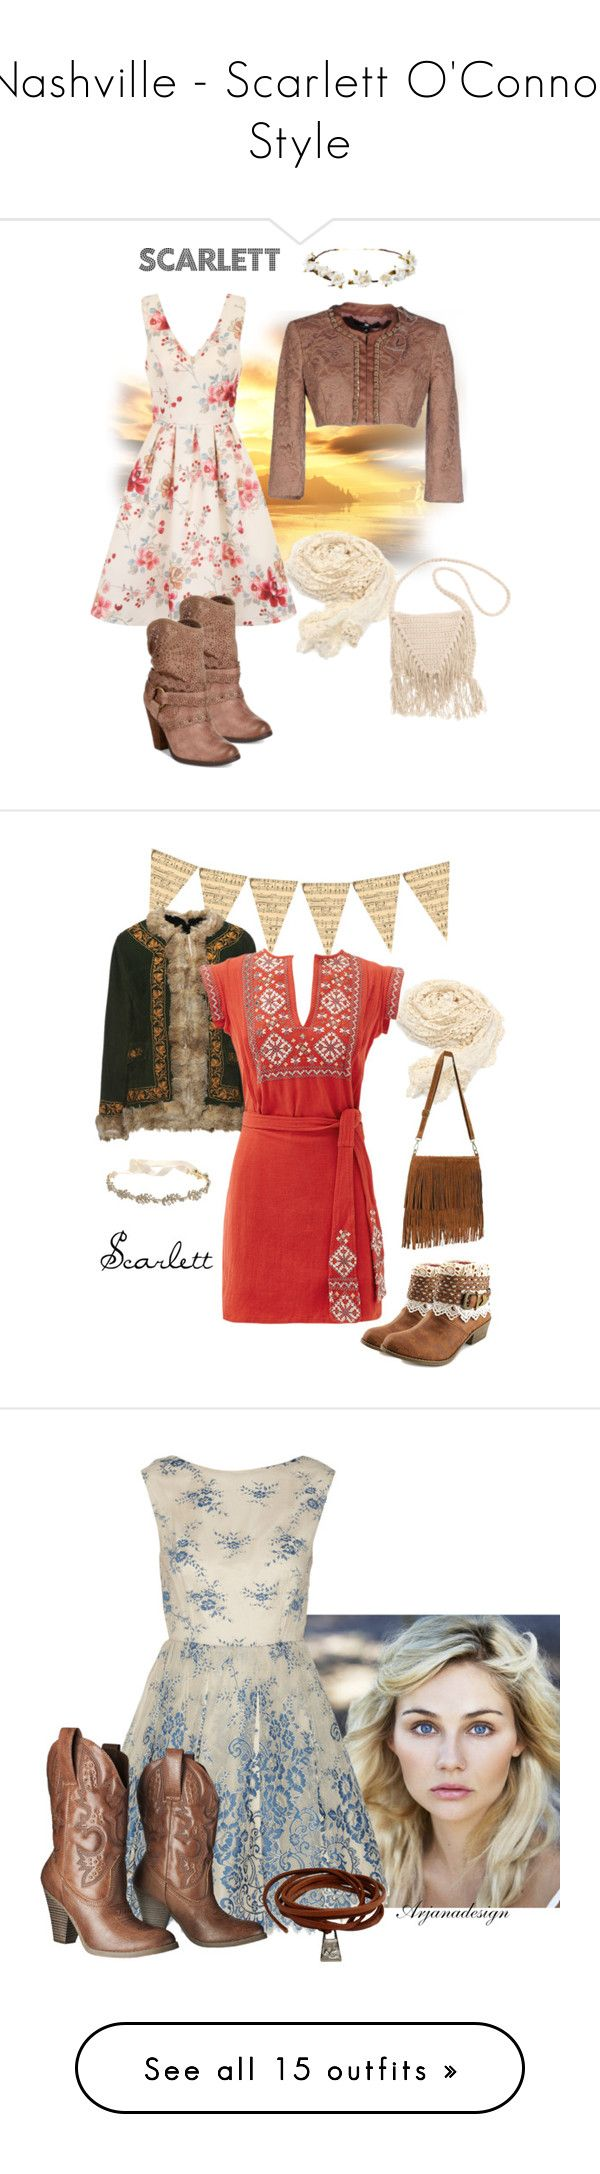 """""""Nashville - Scarlett O'Connor Style"""" by atak-kat on Polyvore featuring Elisabetta Franchi, Chi Chi, Naughty Monkey, Billabong, Cult Gaia, country, TigerBear Republik, Free People, Marchesa and vintage"""